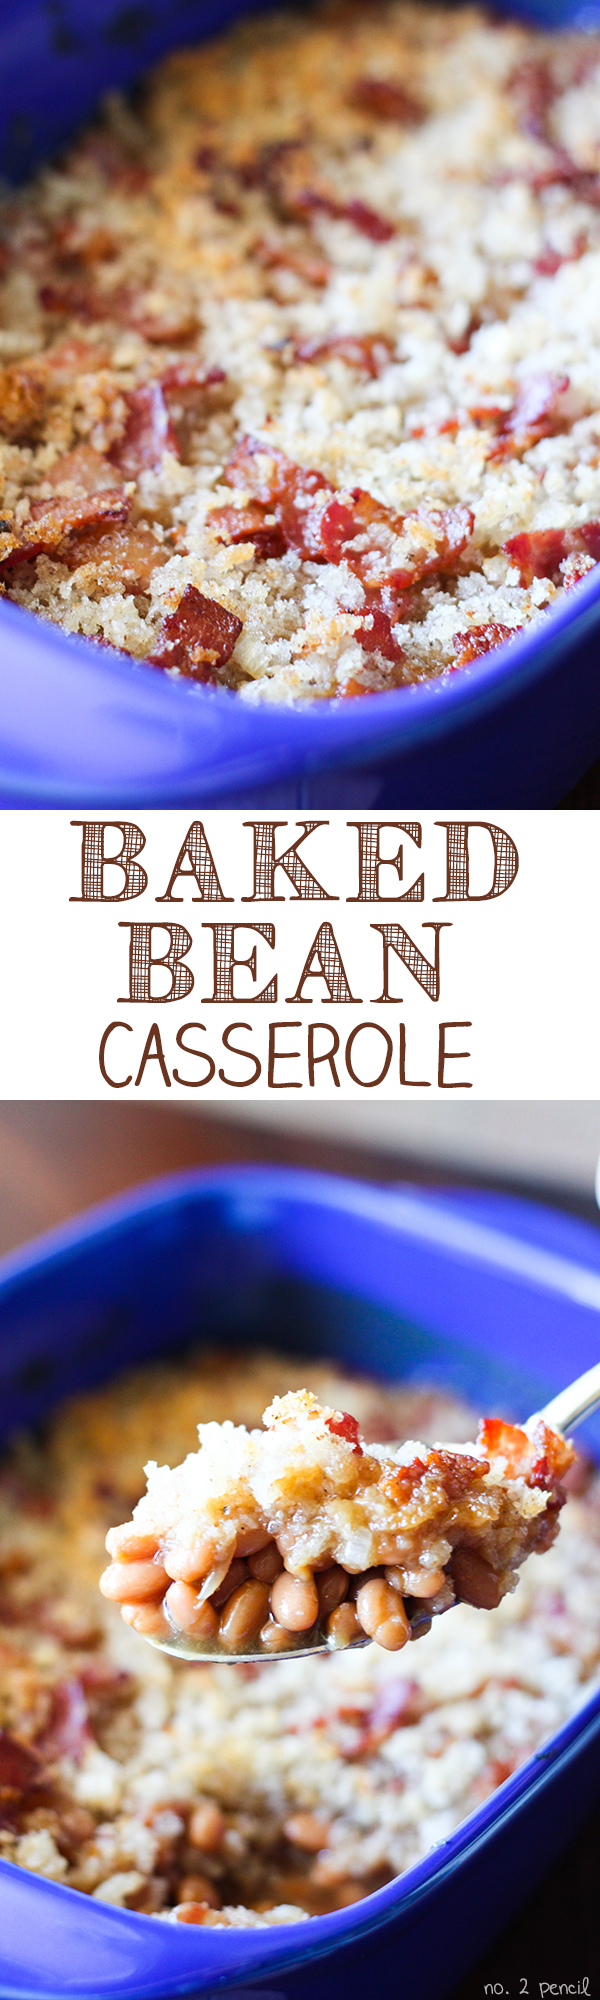 Baked Bean Casserole - topped with bacon, onion and crunchy bread crumbs!